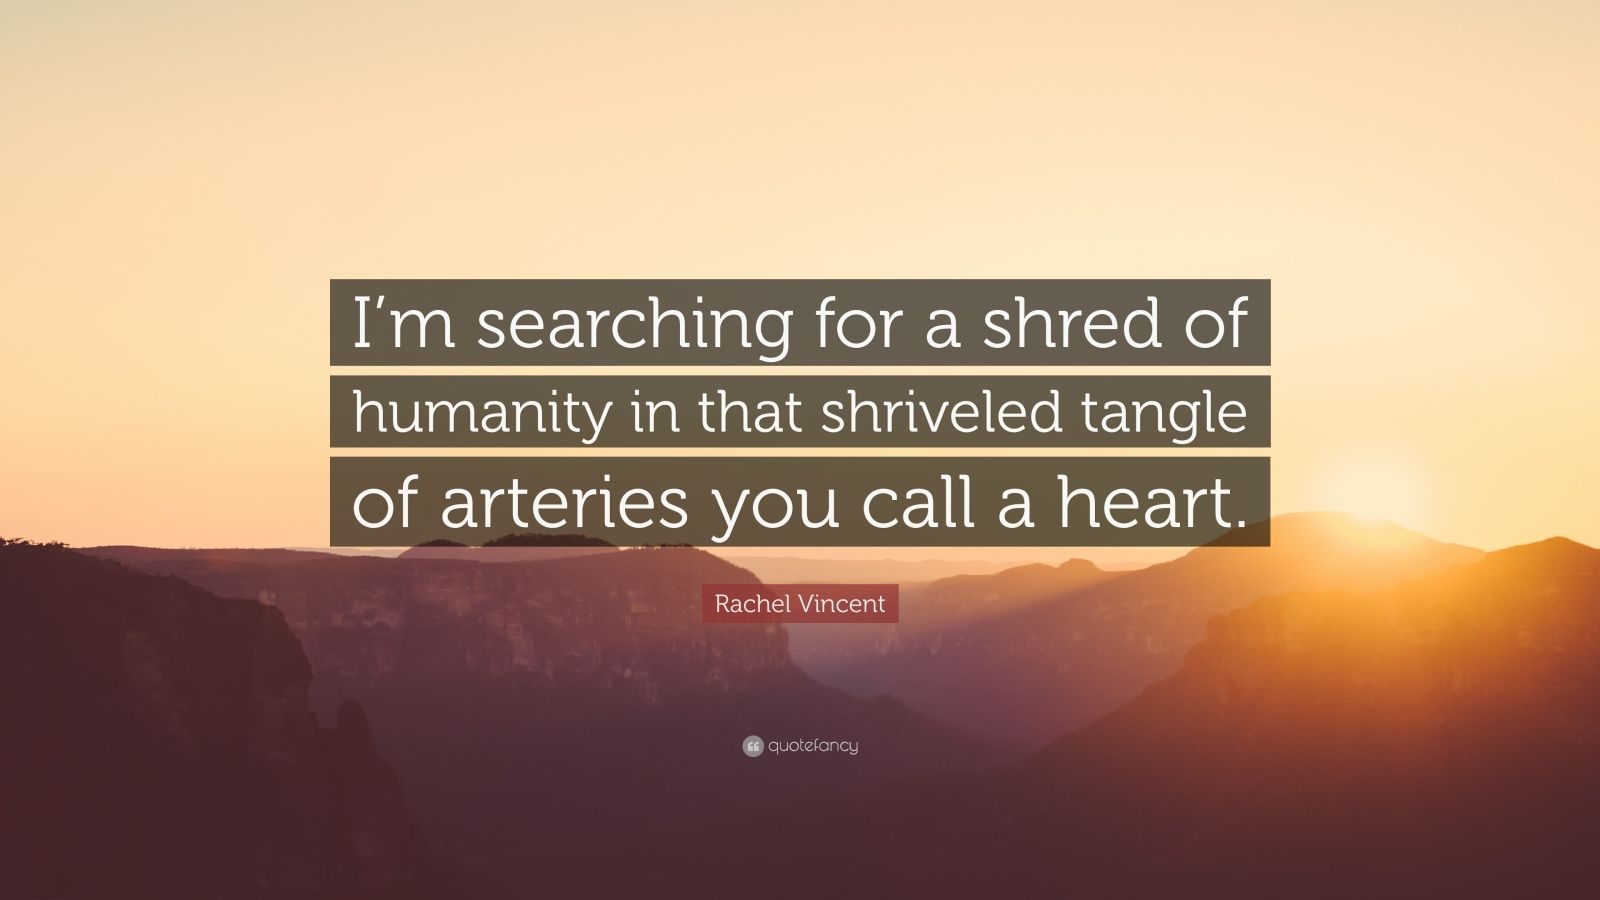 """Rachel Vincent Quote: """"I'm searching for a shred of humanity in that shriveled tangle of arteries you call a heart."""""""